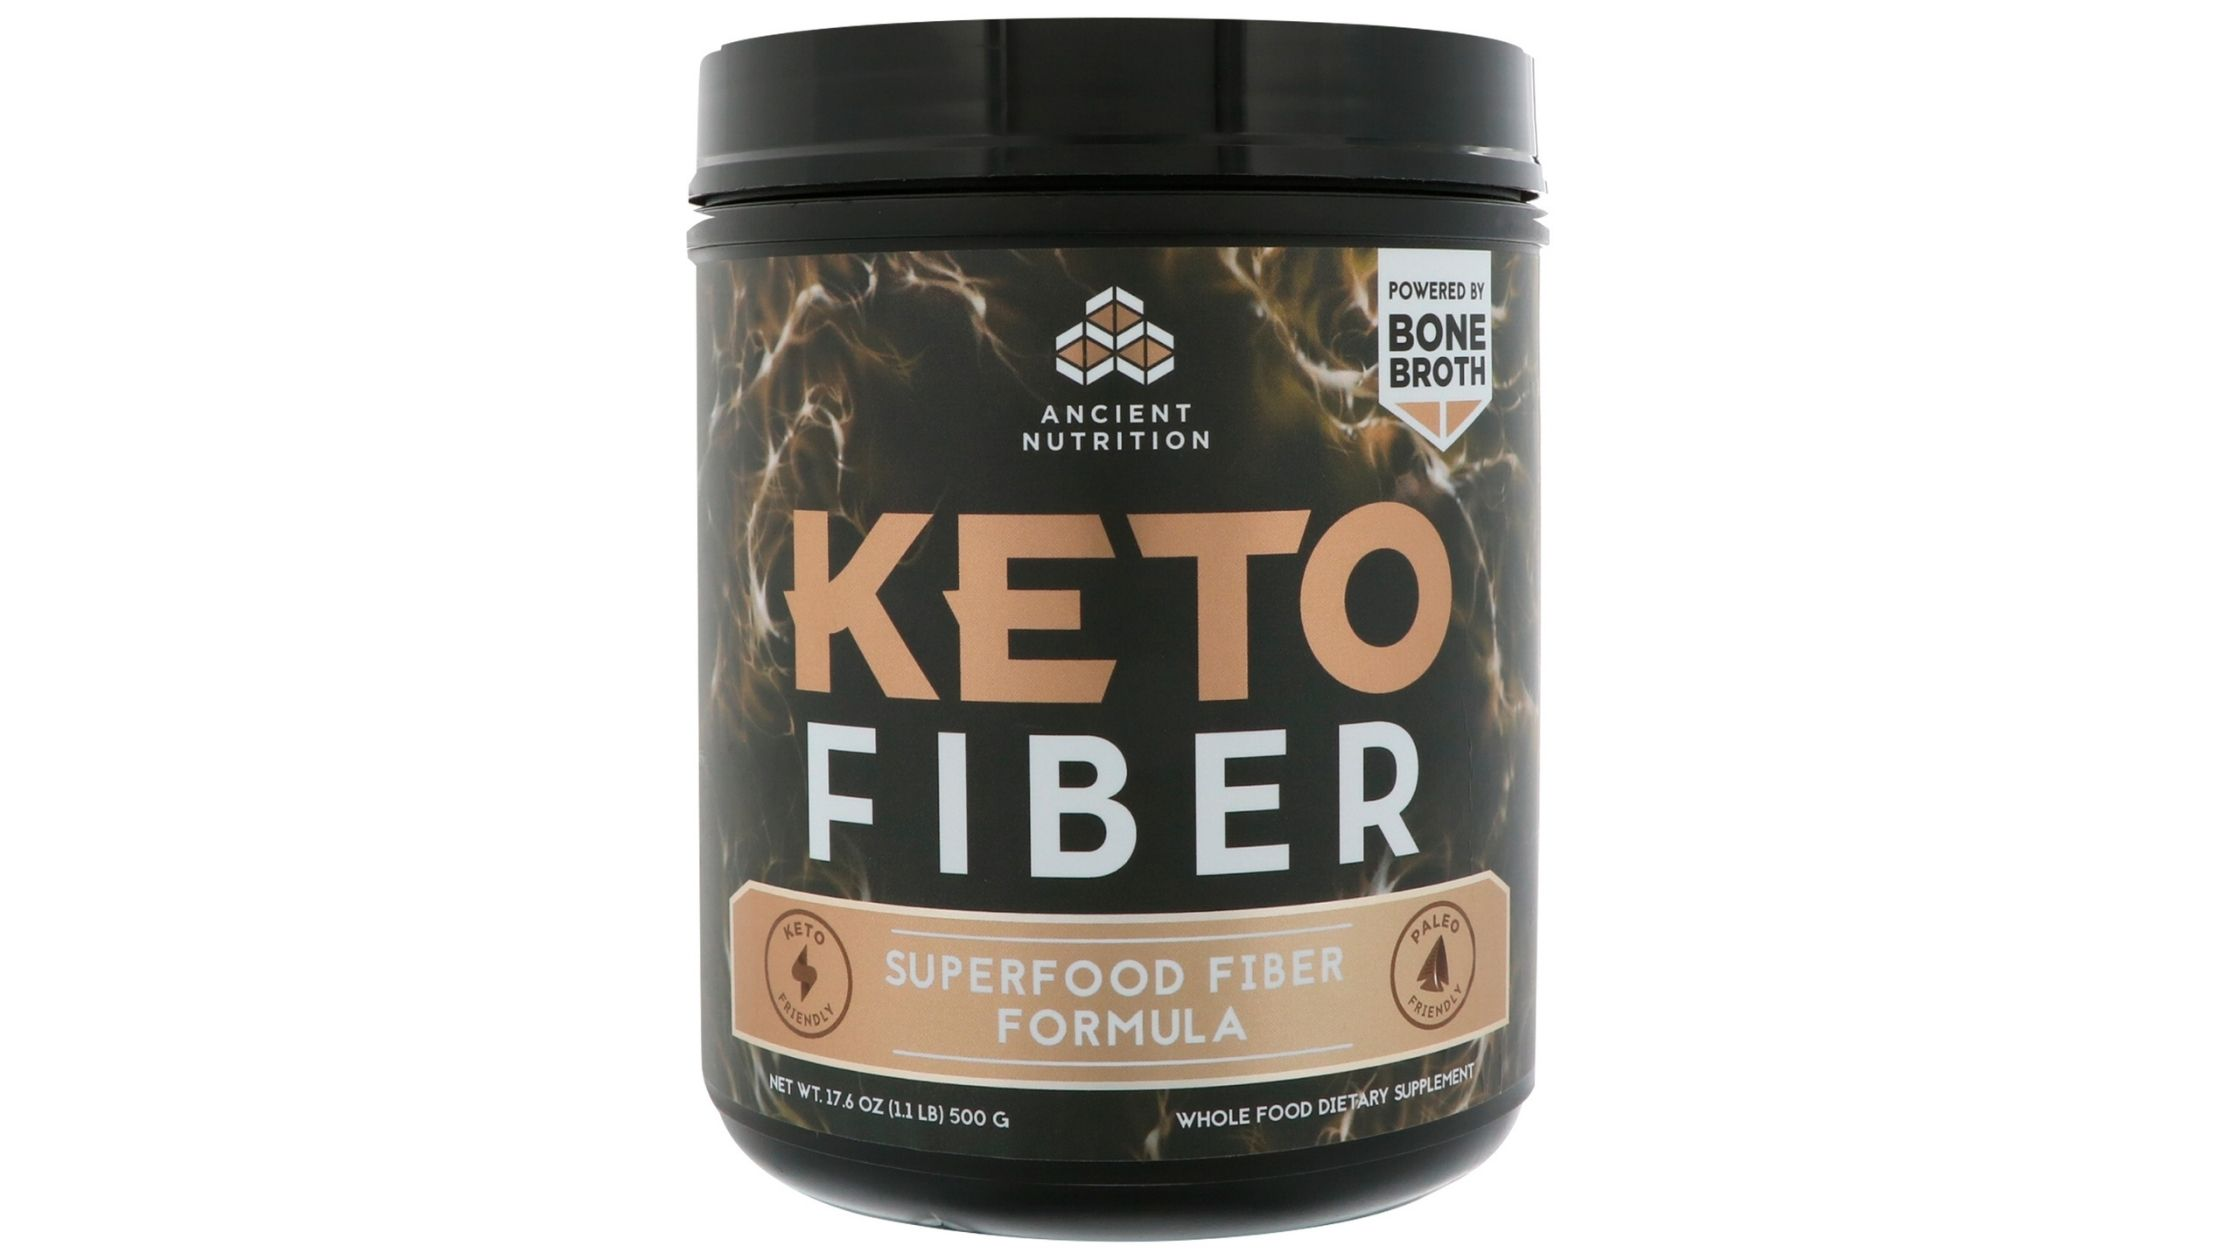 KetoFIBER powder by Ancient Nutrition